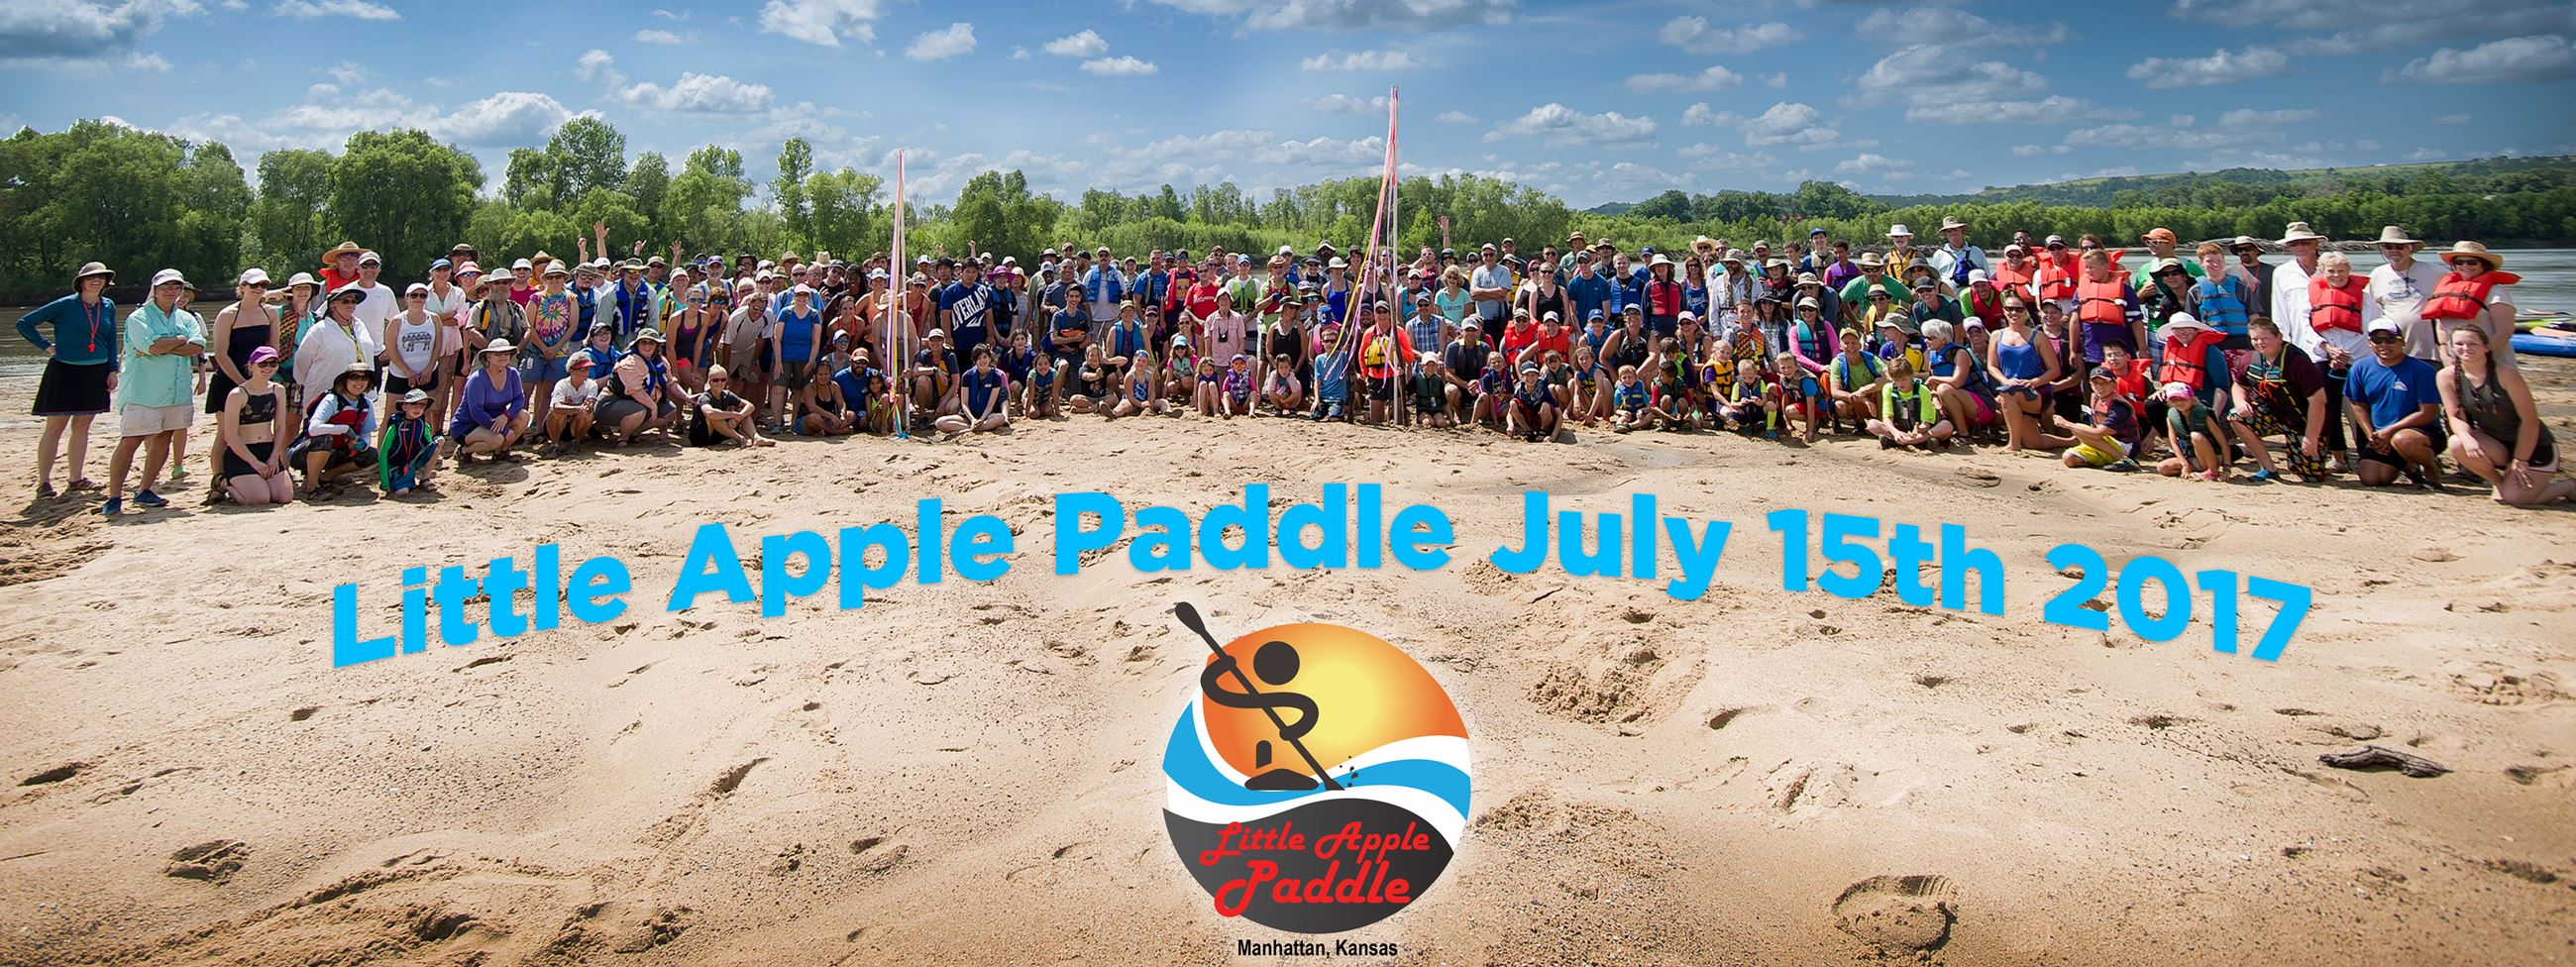 Paddle Graphic smaller